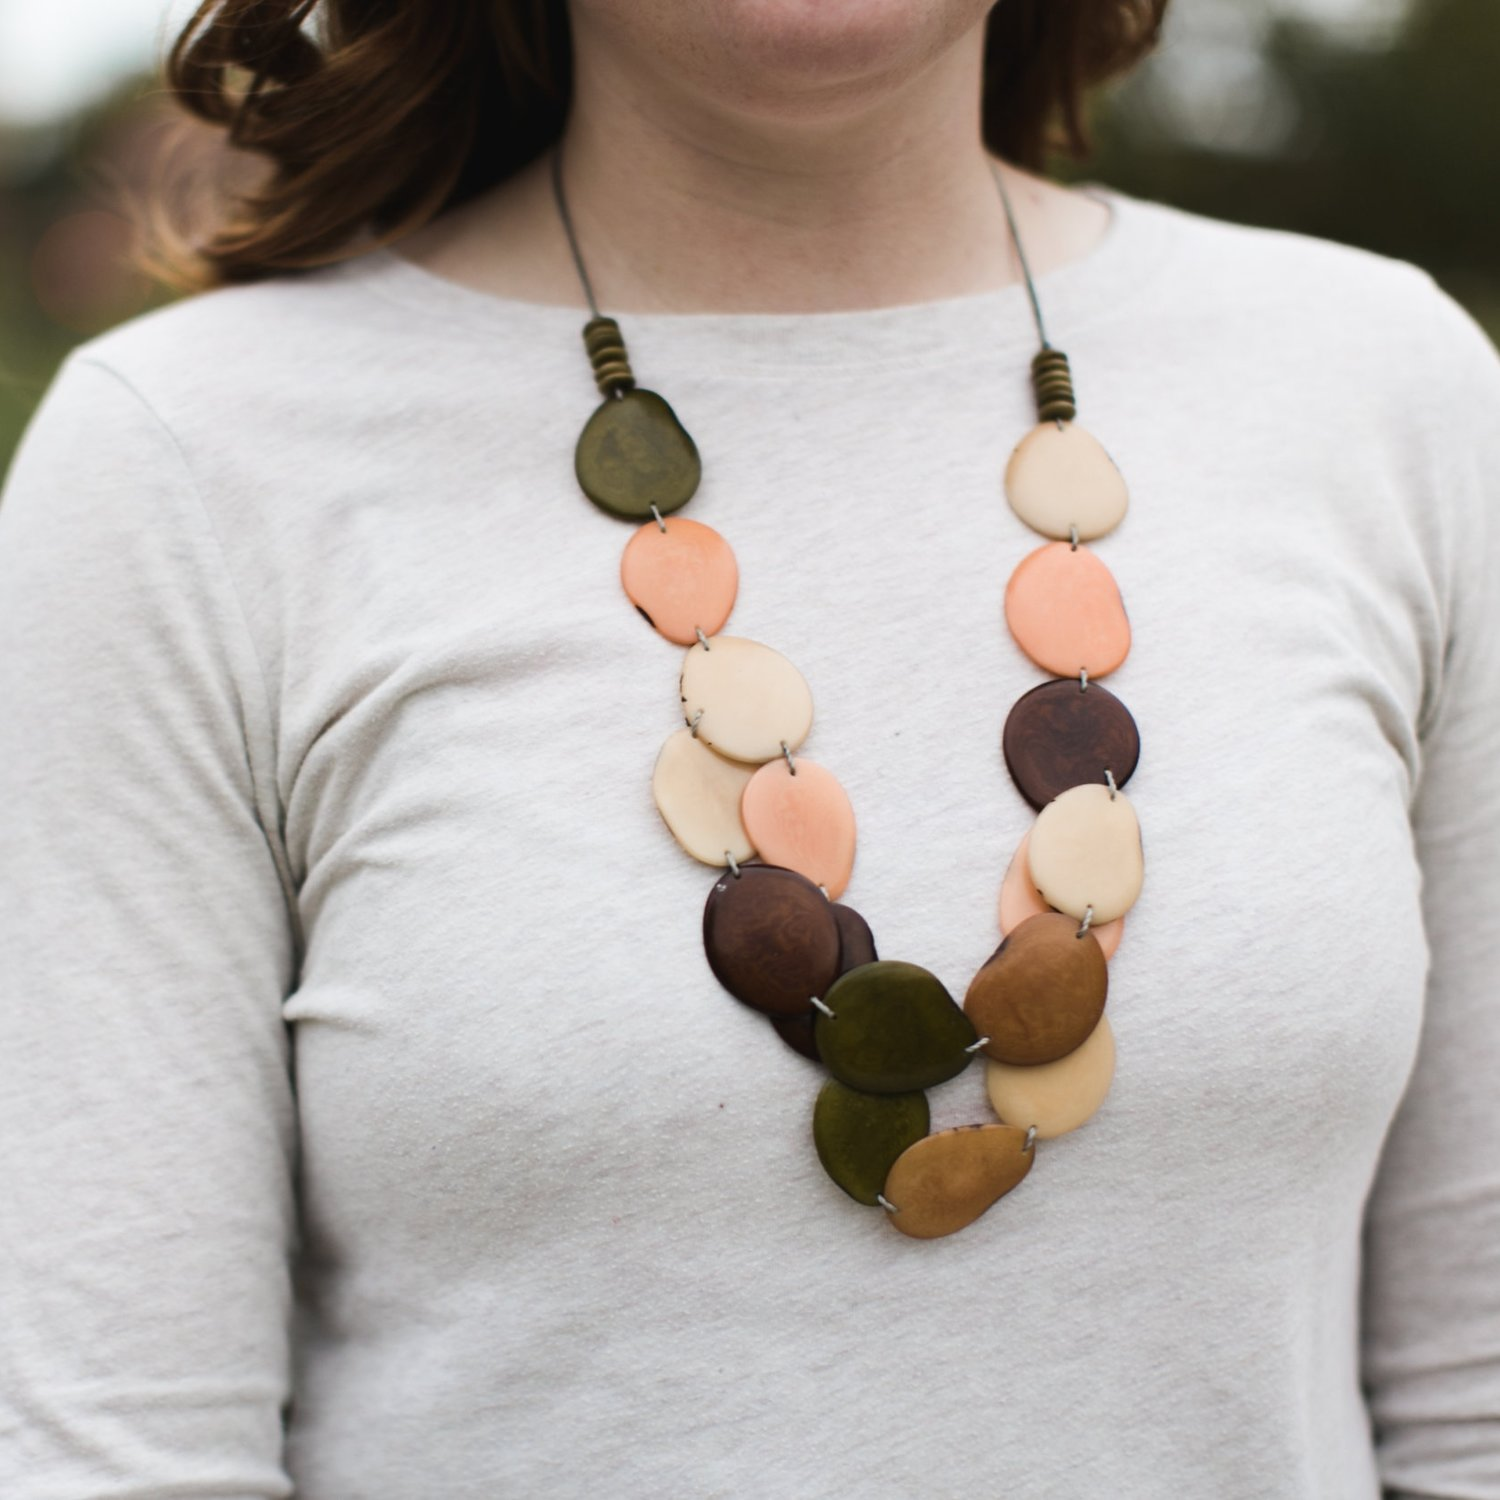 ivory beads standard tagua products ecofriendly statement necklace vegetable purple nut handmade